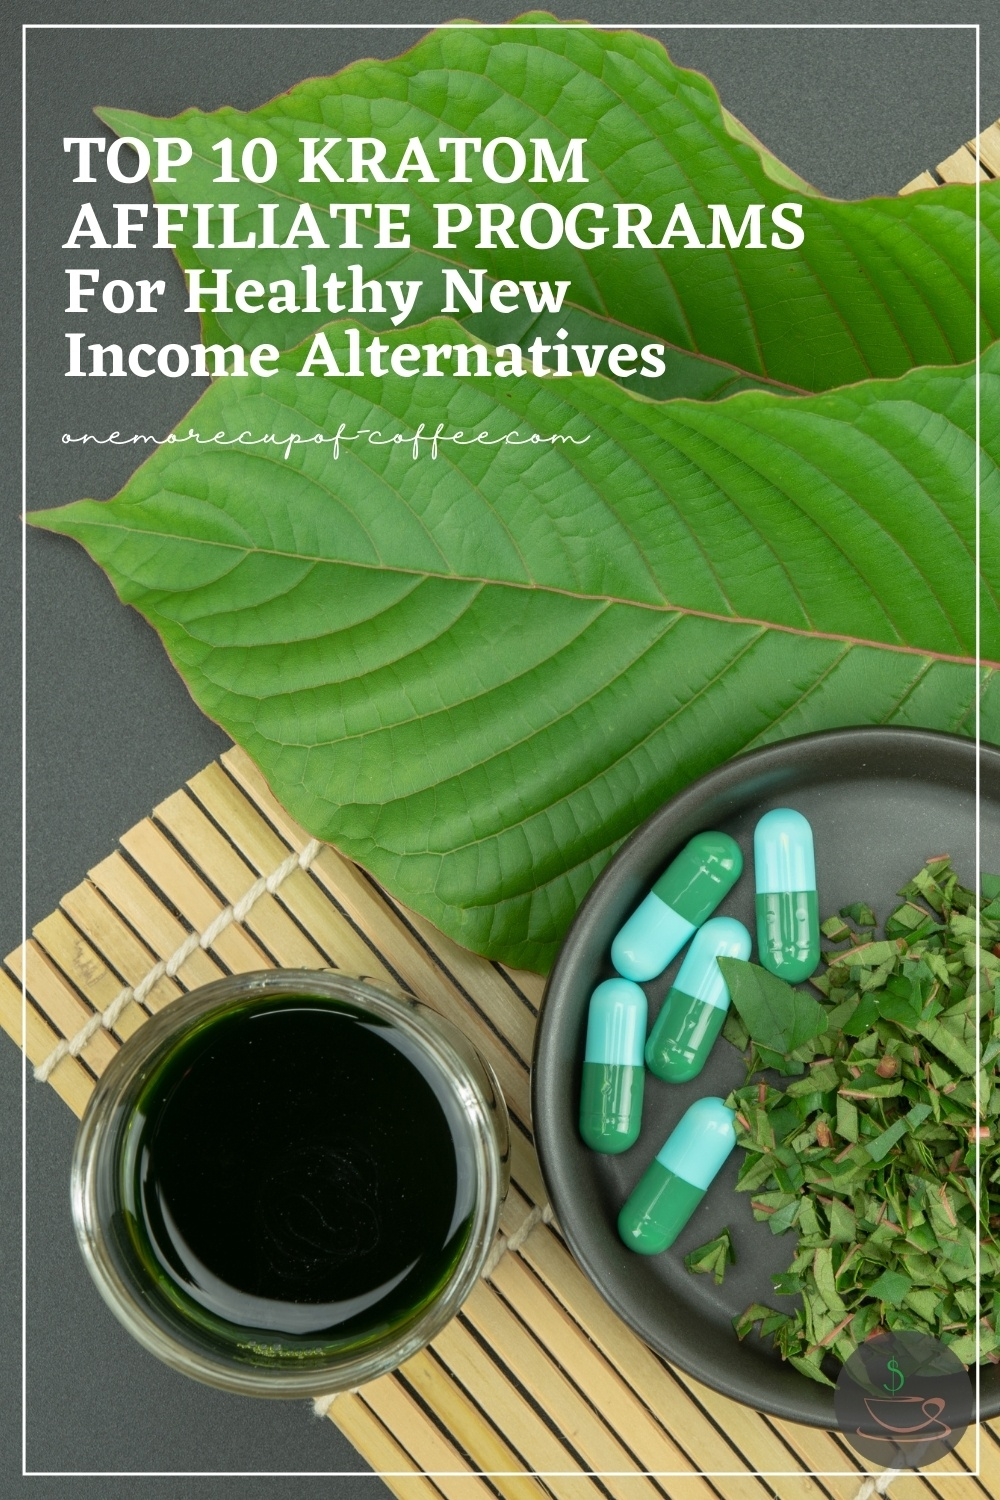 top view image of kratom leaves, capsules, and tea; with text overlay